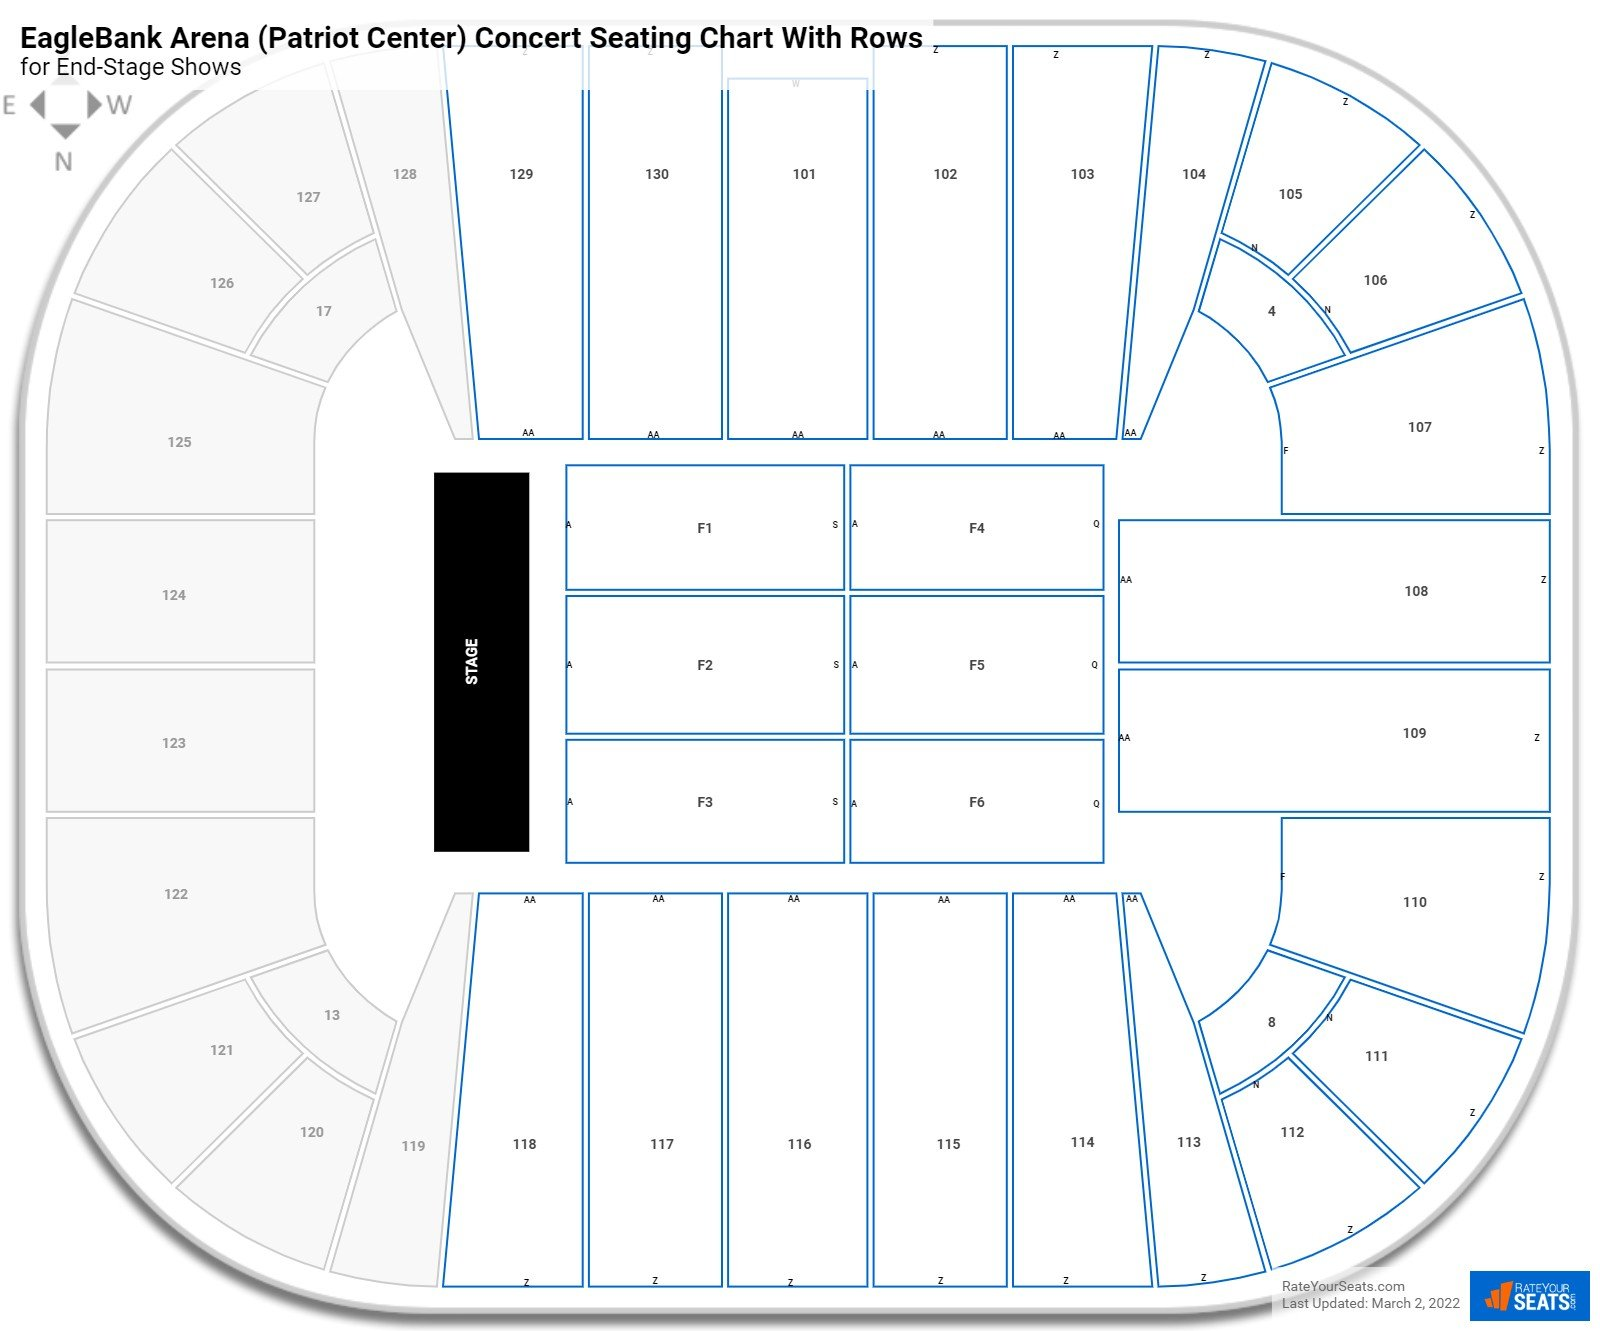 EagleBank Arena (Patriot Center) seating chart with rows